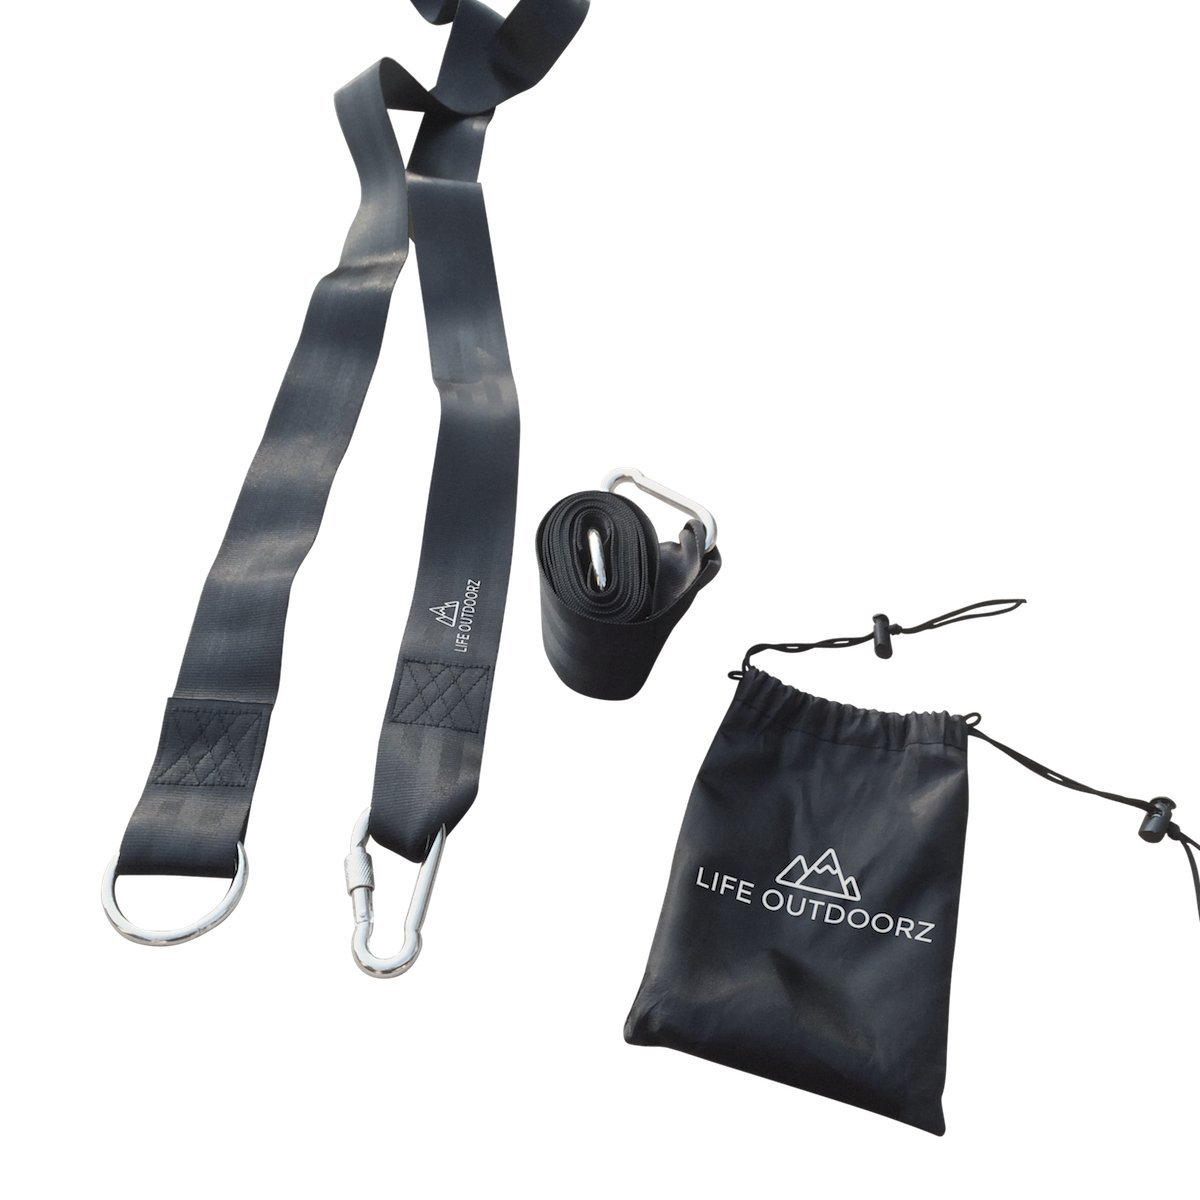 Jet Black Heavy Duty Polyester Anti Stretch Hammock Tree Straps - Holds up to 2204 Lbs - Quick Setup - Pair of Extra Long Straps with Black Nickle Plated Iron Carabineers + Instructions + Carry Bag